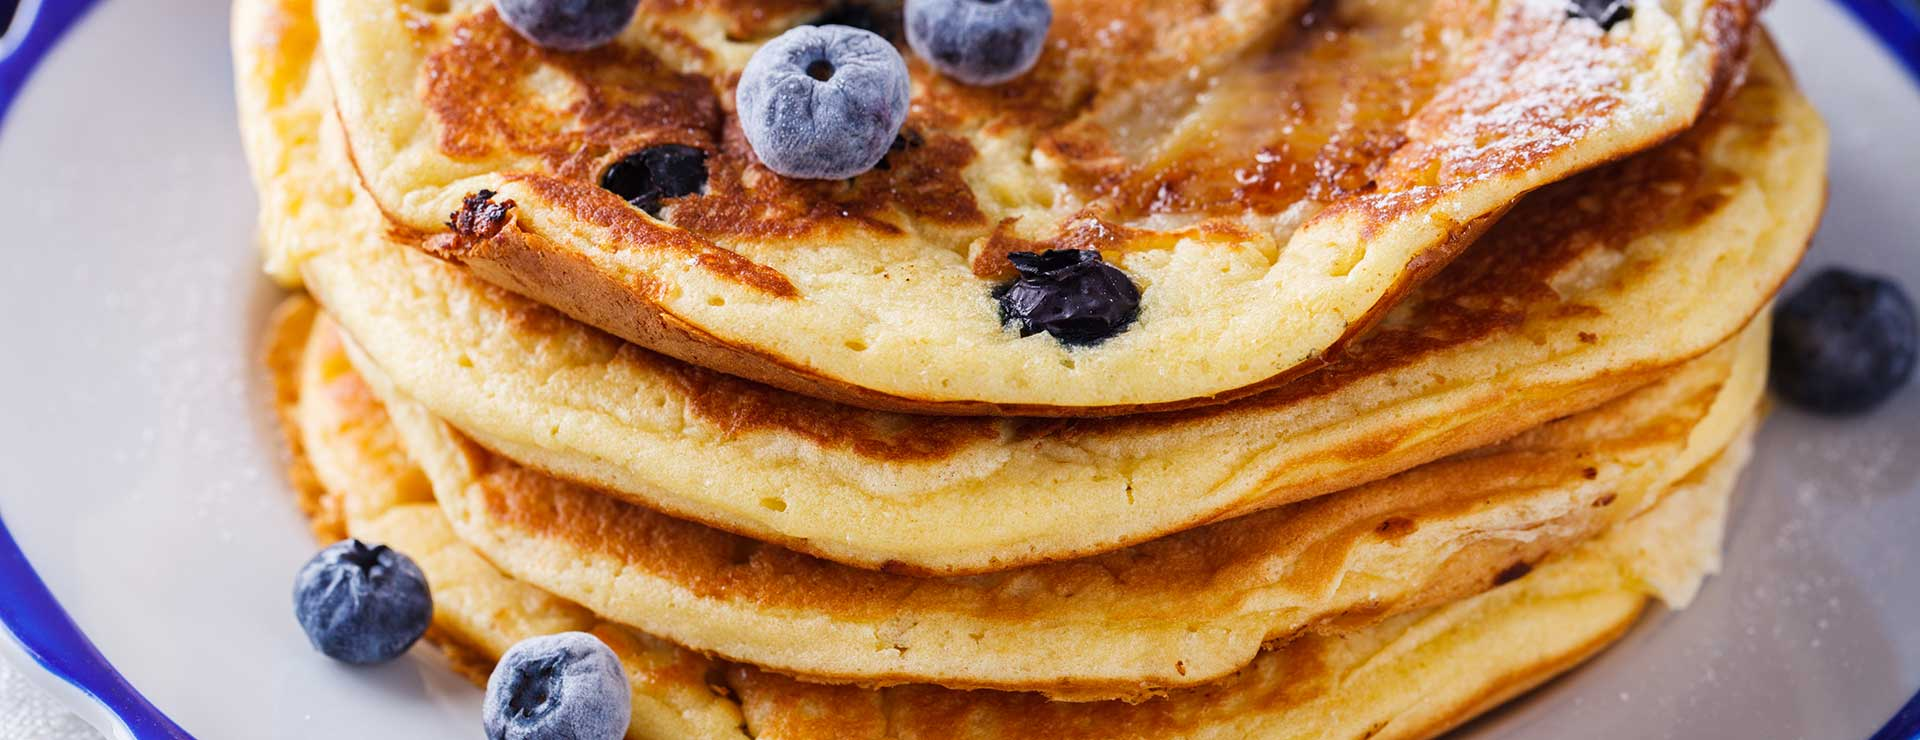 A plate of pancakes with blueberries on top.